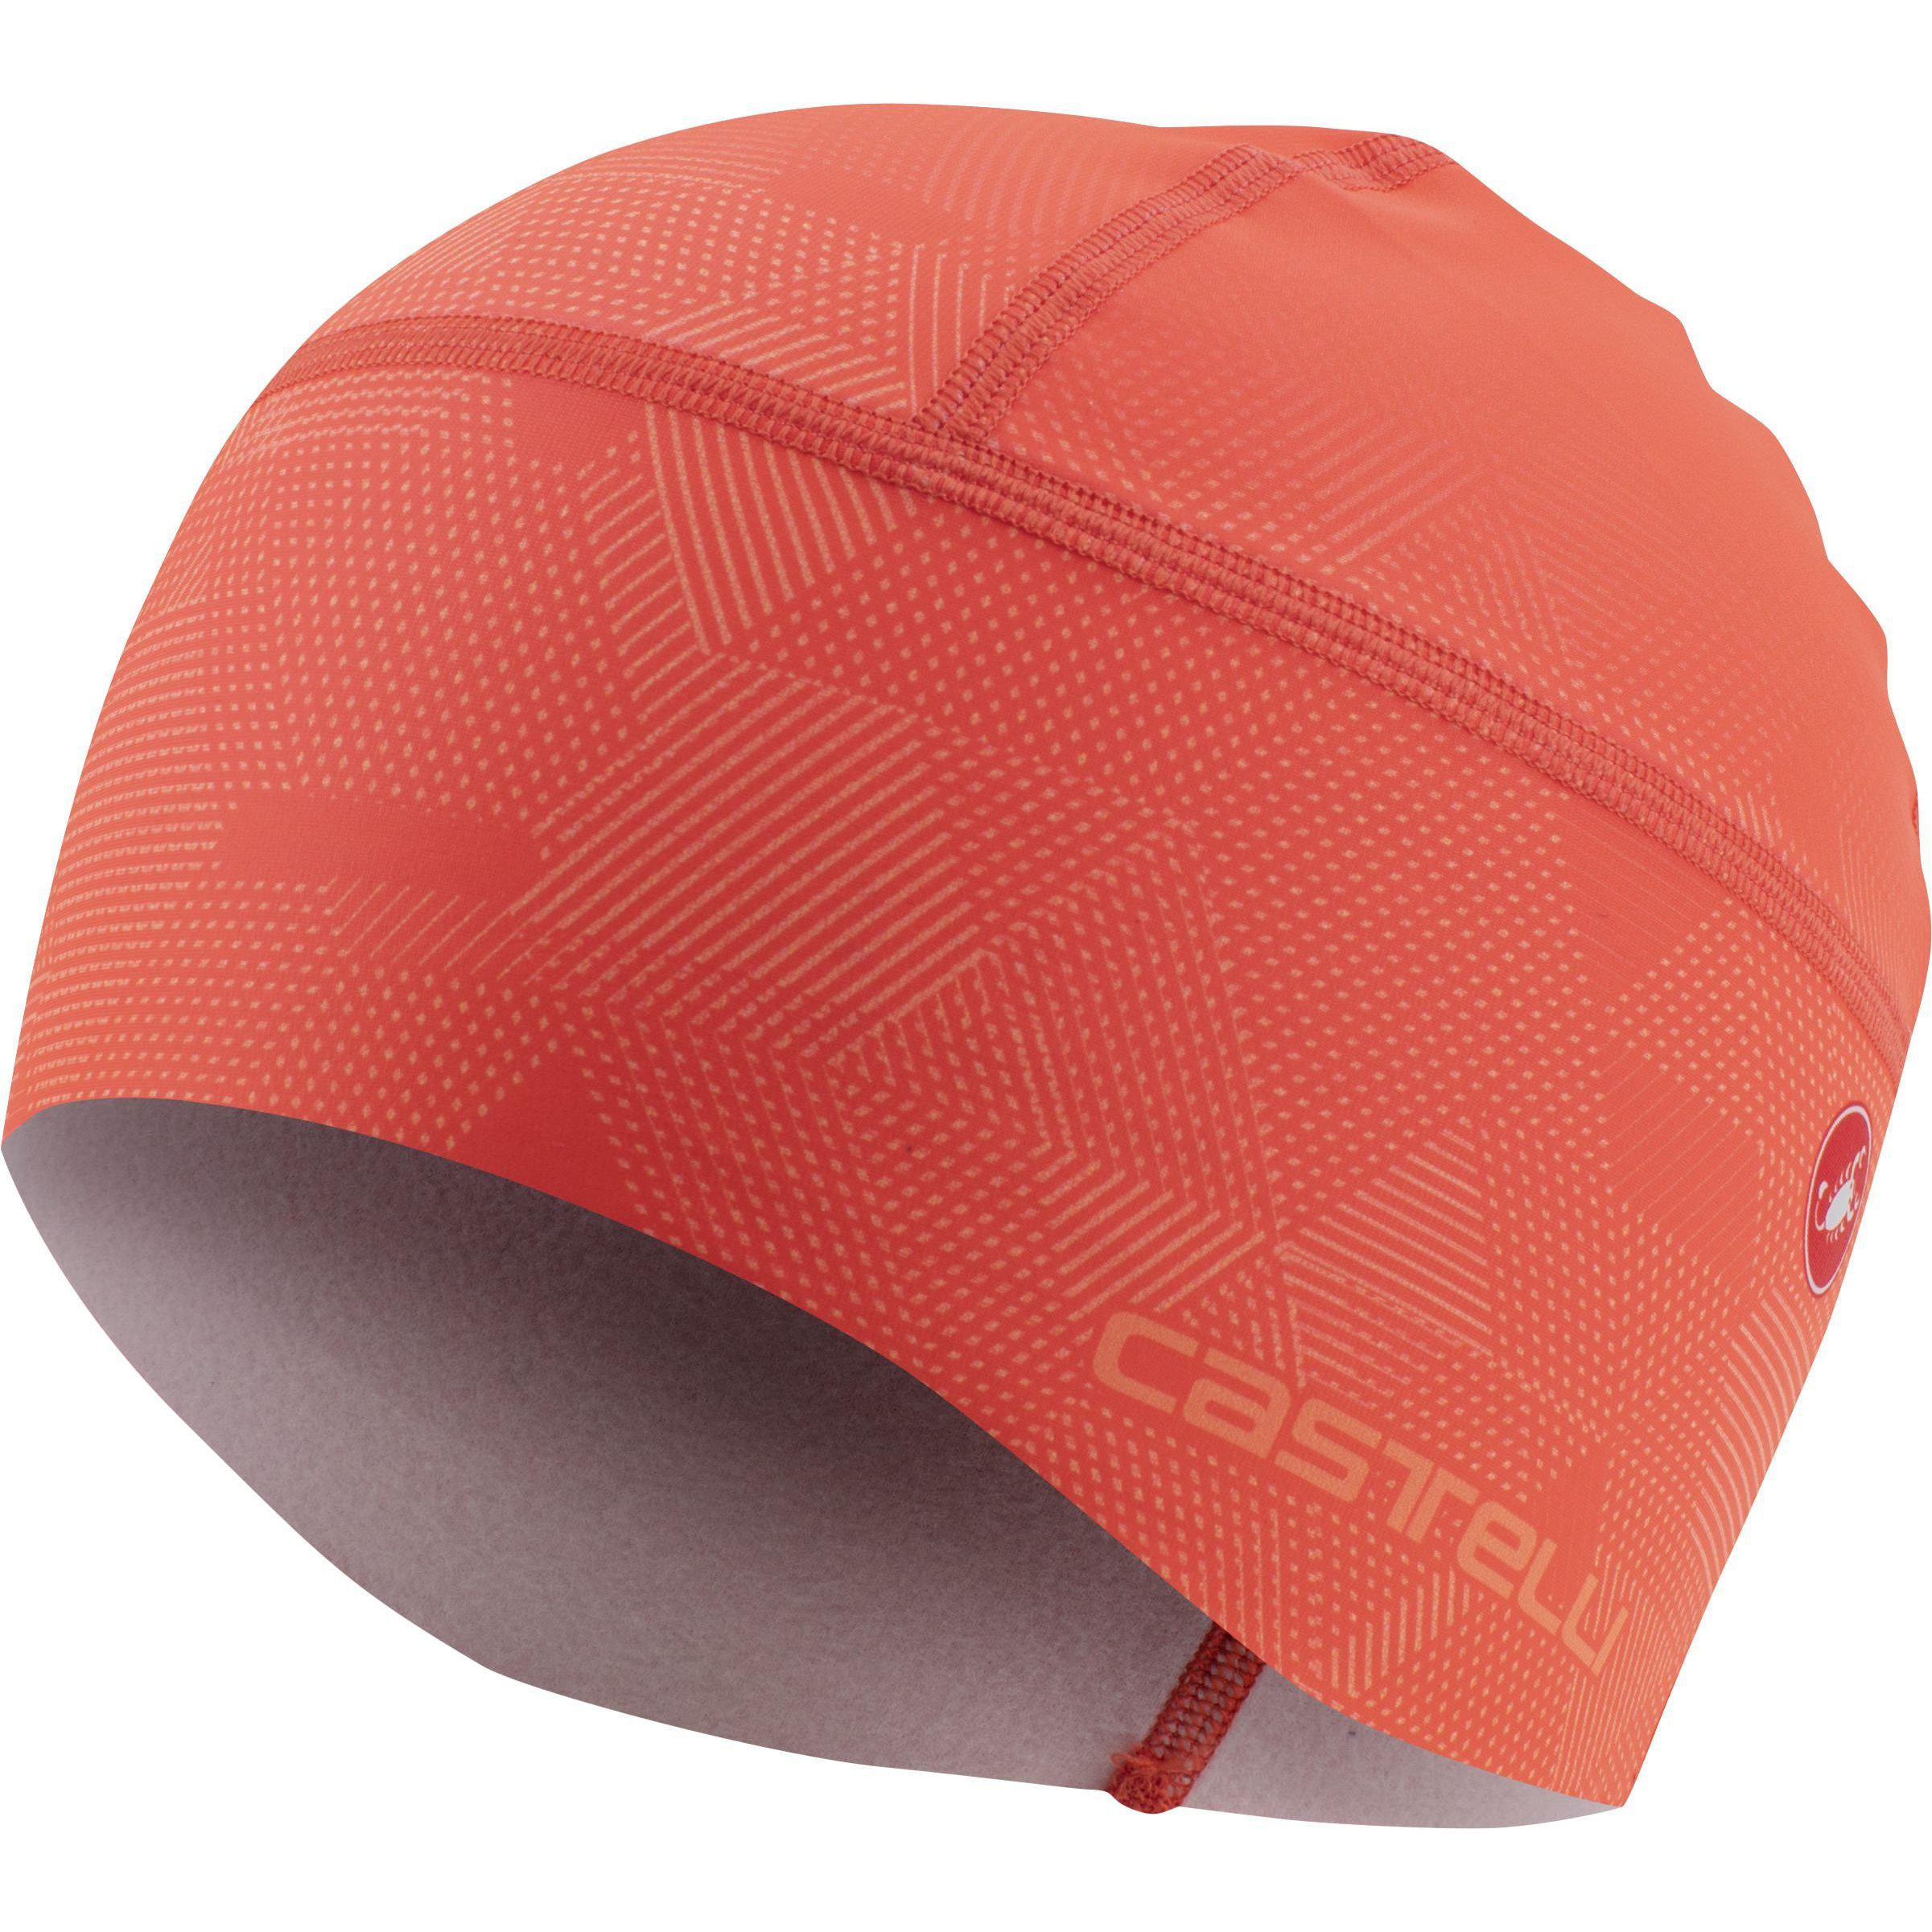 Castelli-Castelli Pro Thermal Women's Skully-Brilliant Pink-UNI-CS205712888-saddleback-elite-performance-cycling